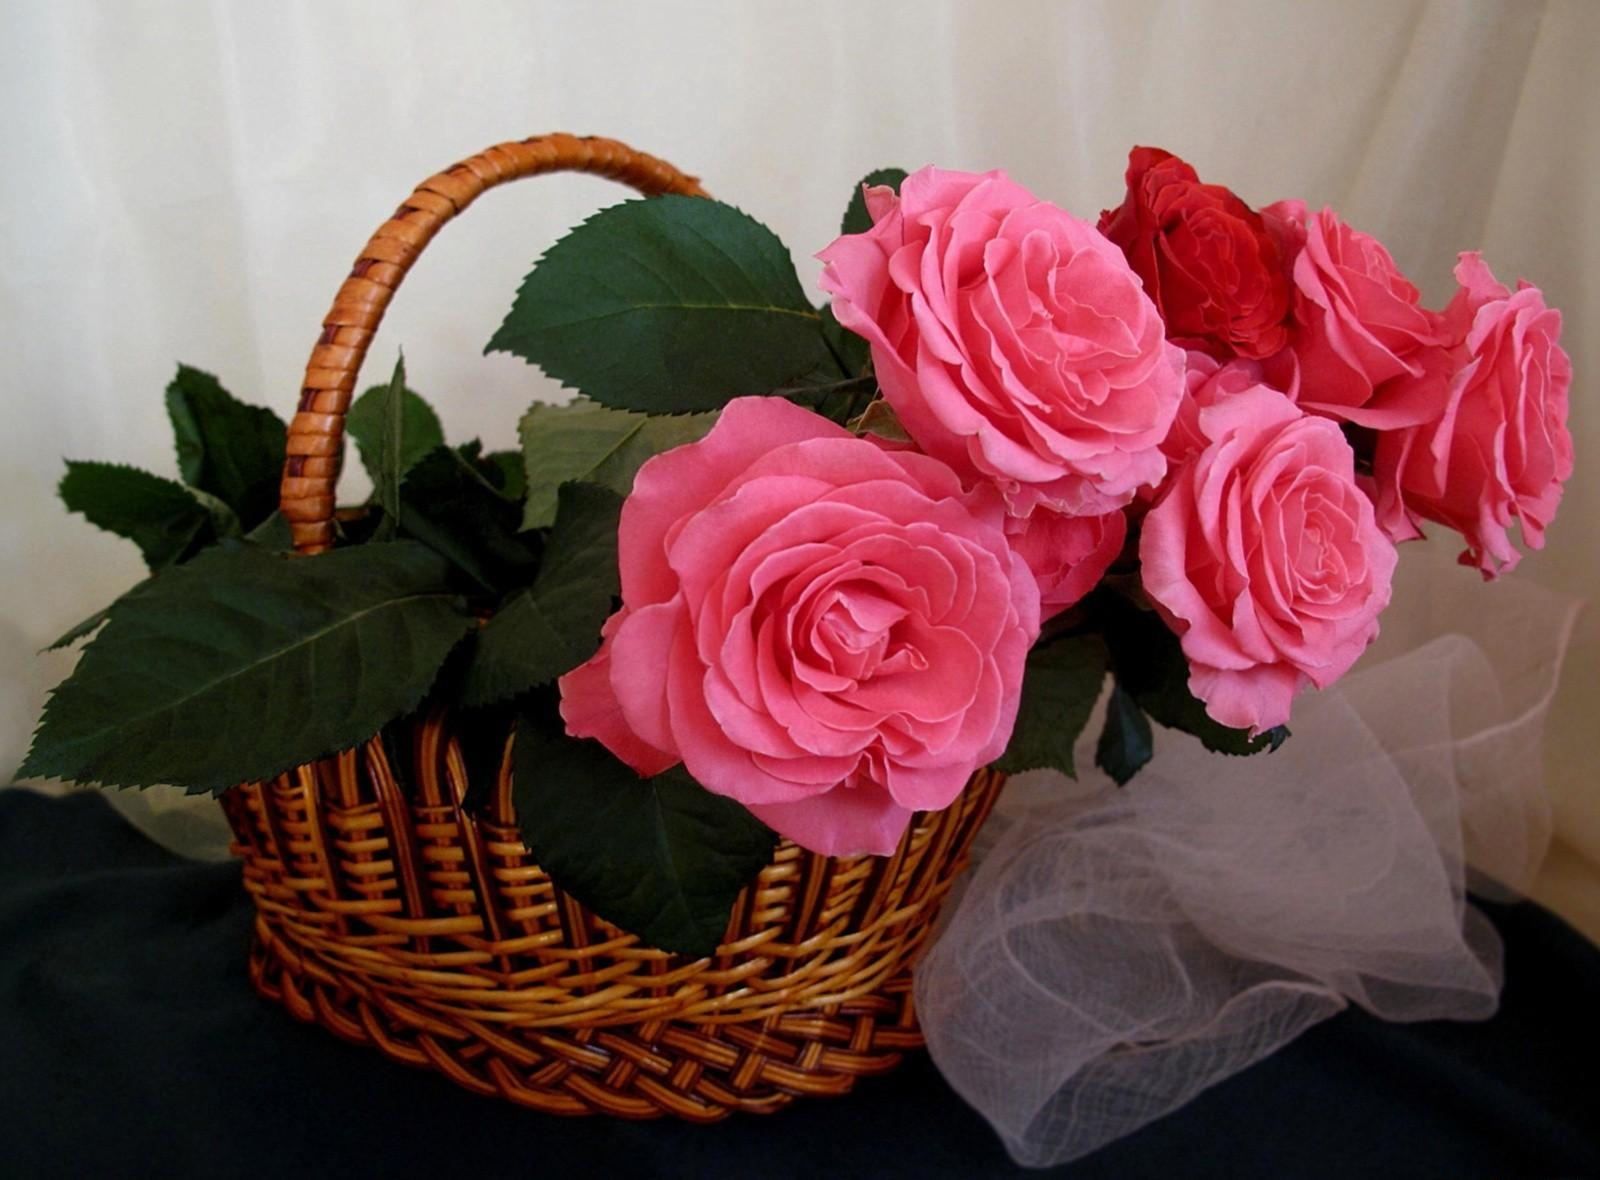 124599 Screensavers and Wallpapers Scarf for phone. Download Flowers, Roses, Basket, Scarf pictures for free